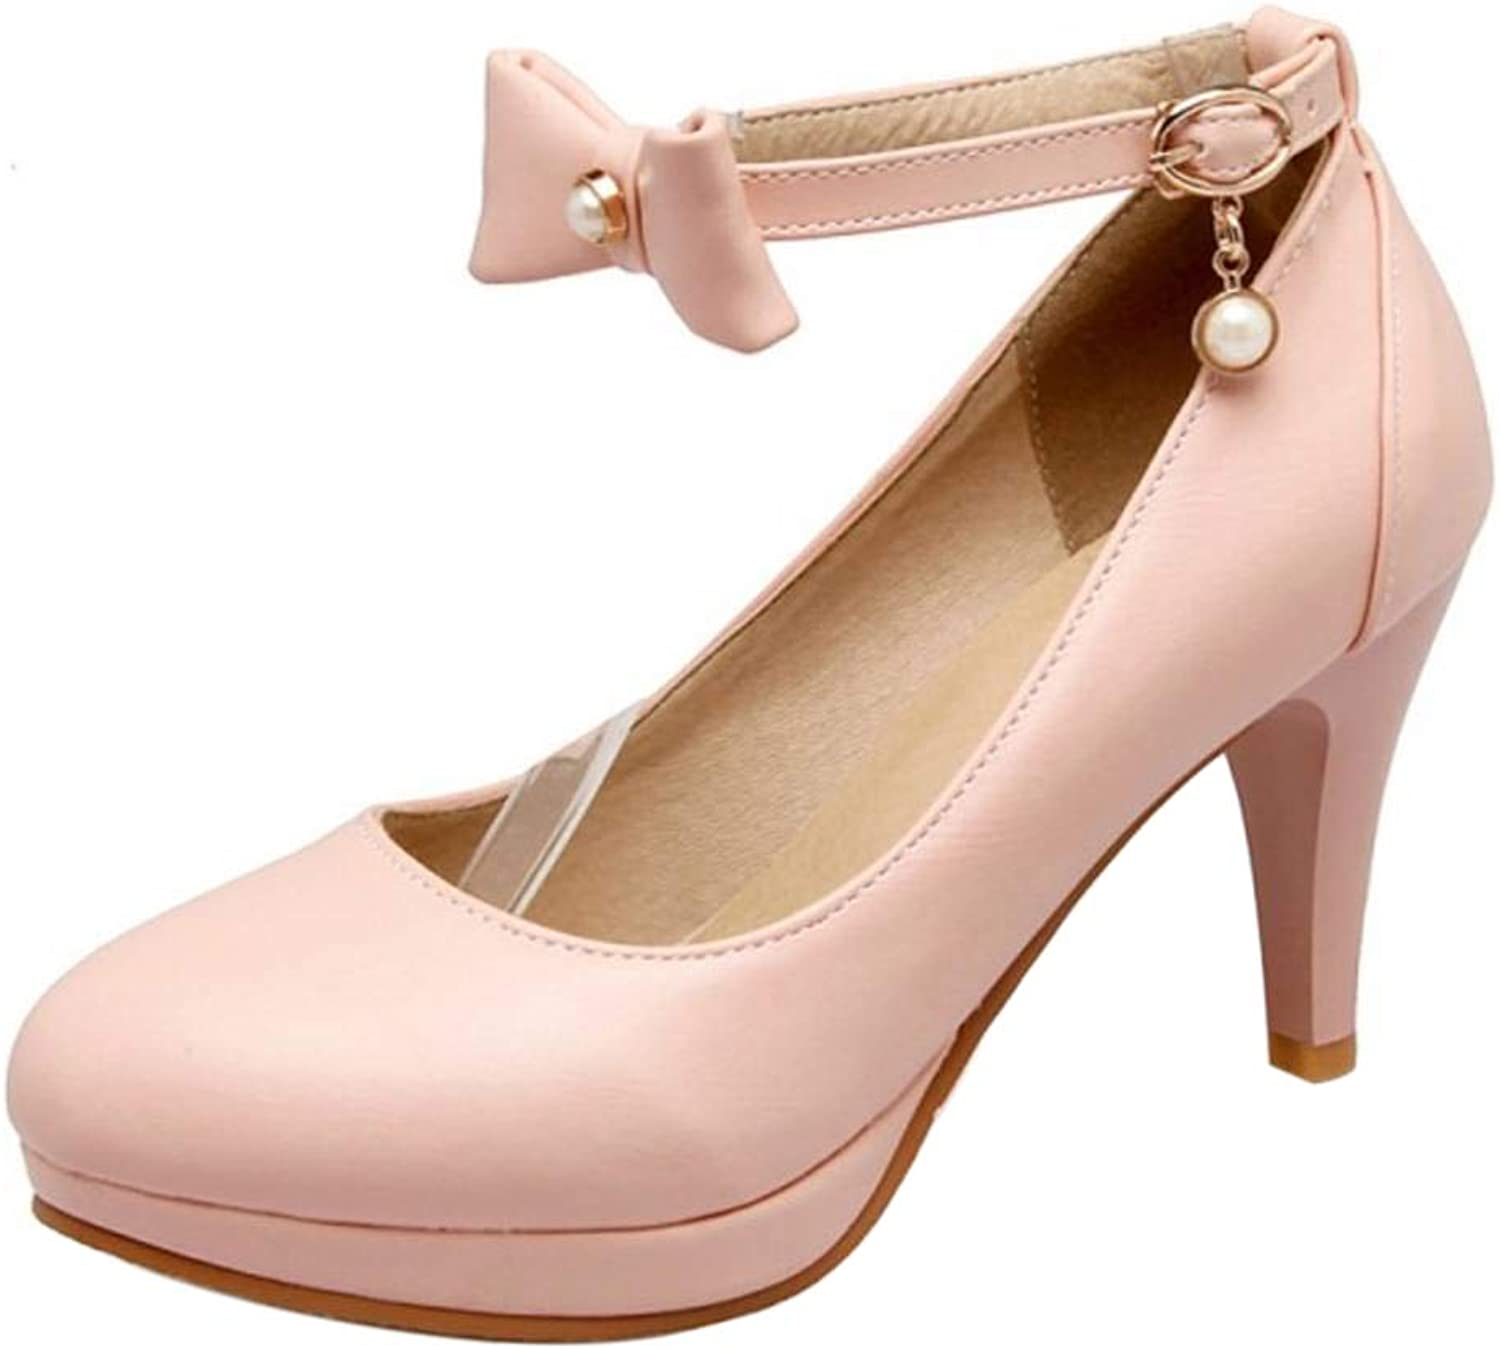 ELEEMEE Women Fashion Platform Pumps Cone Heel